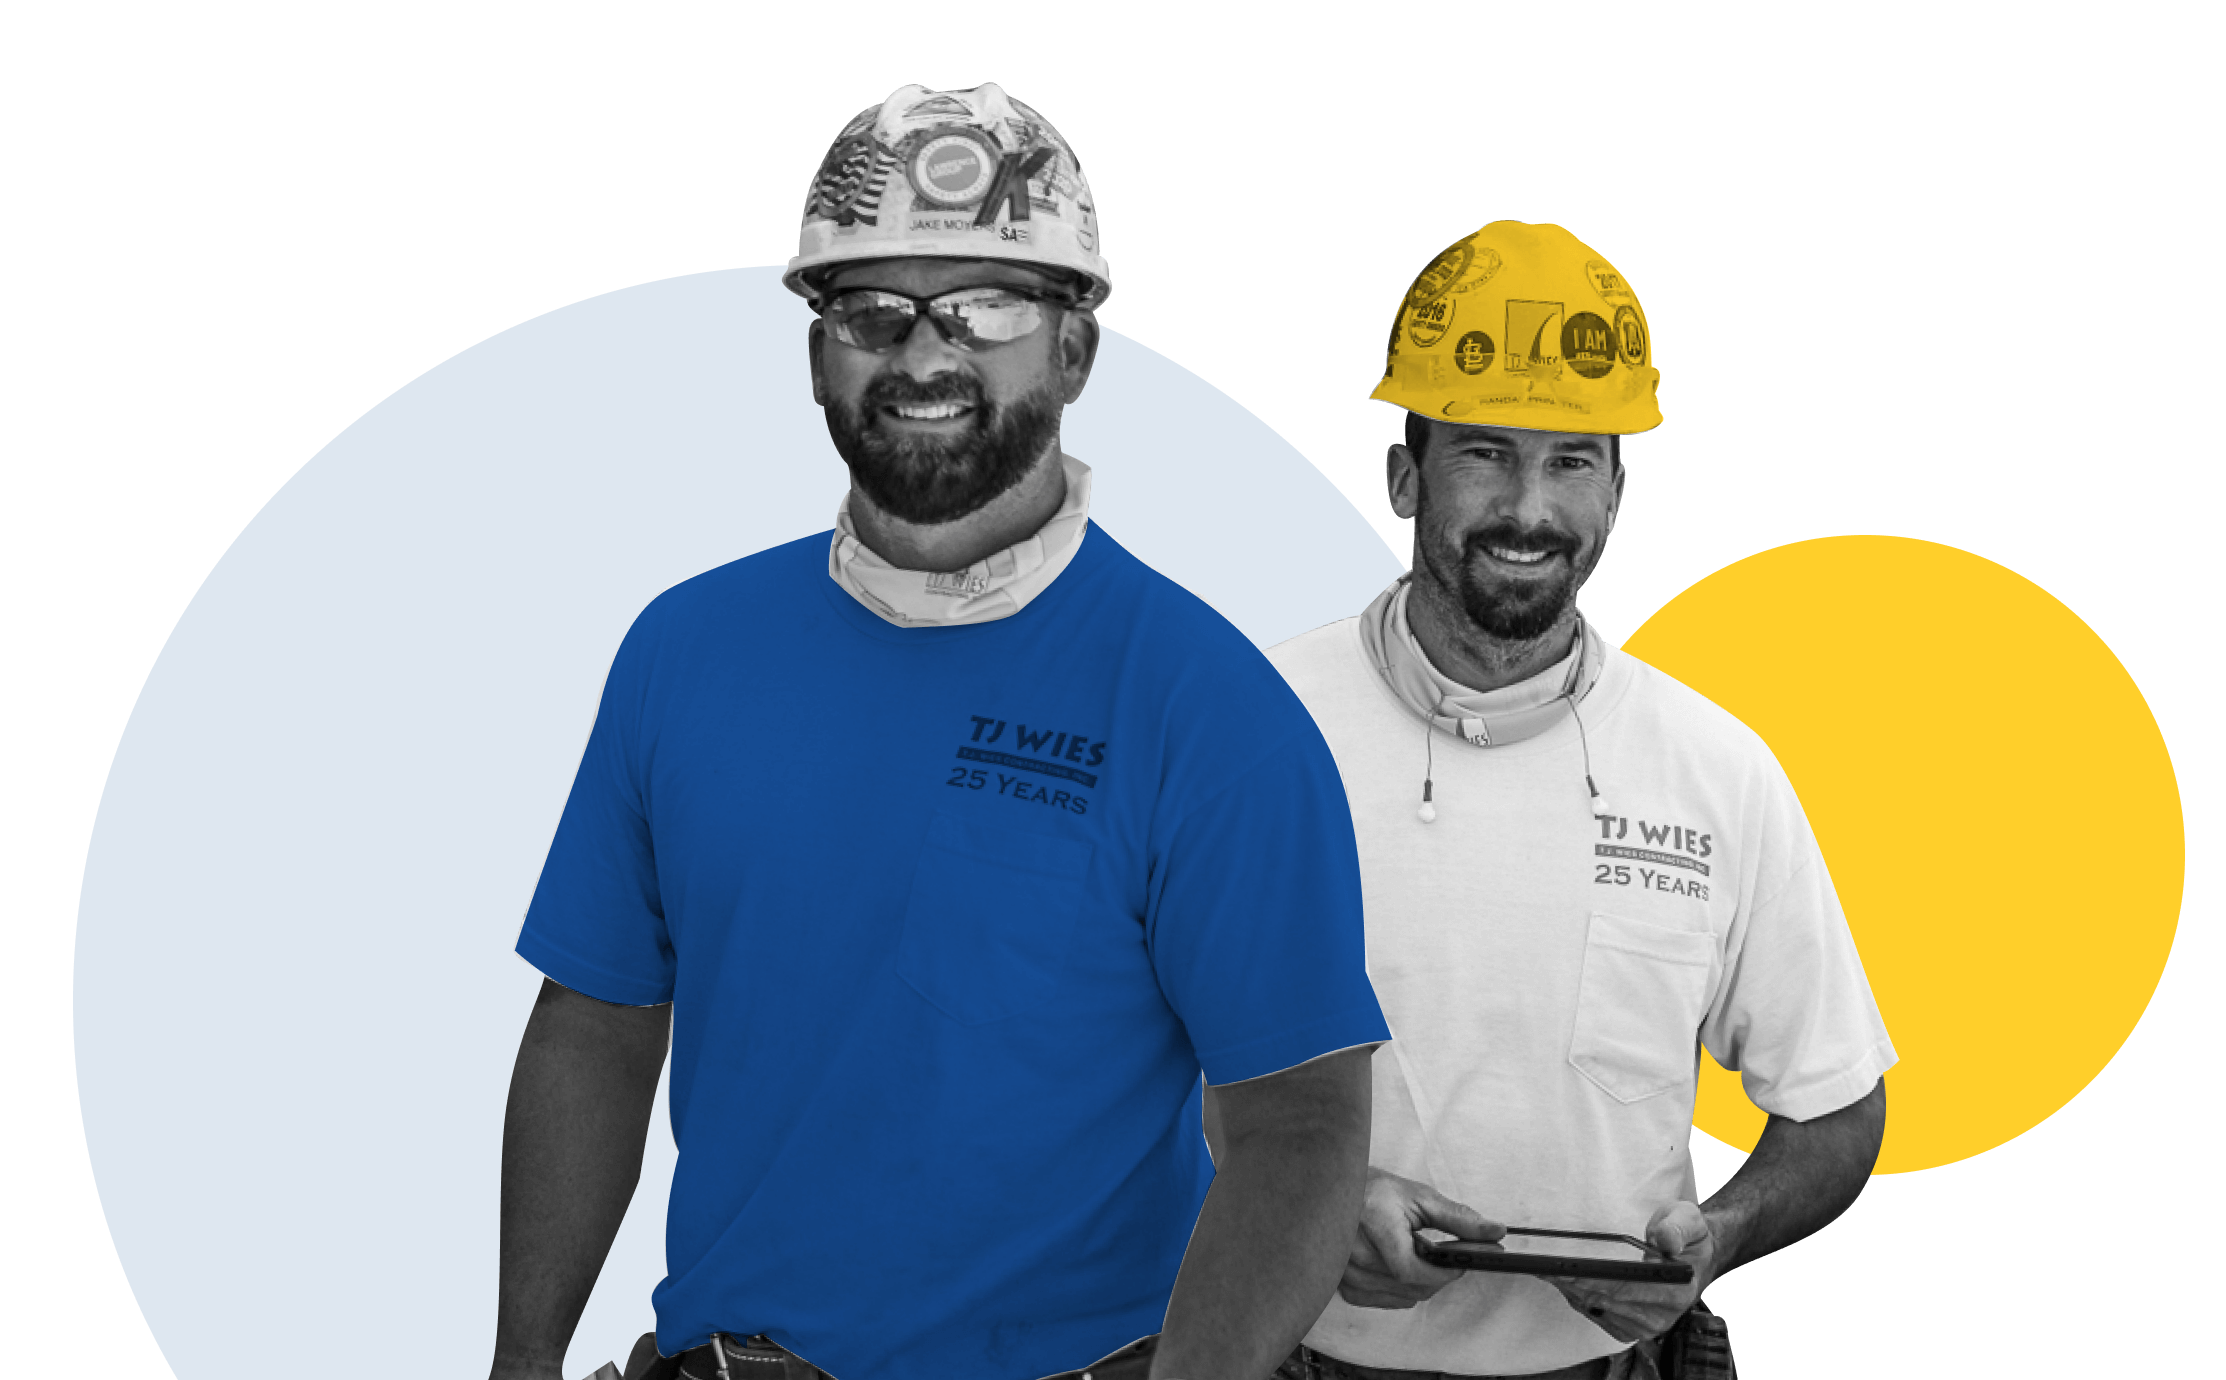 TJ Wies was named one of the best places to work by the St. Louis business journal. Contact us for construction careers, construction jobs, carpentry jobs, laborer jobs.